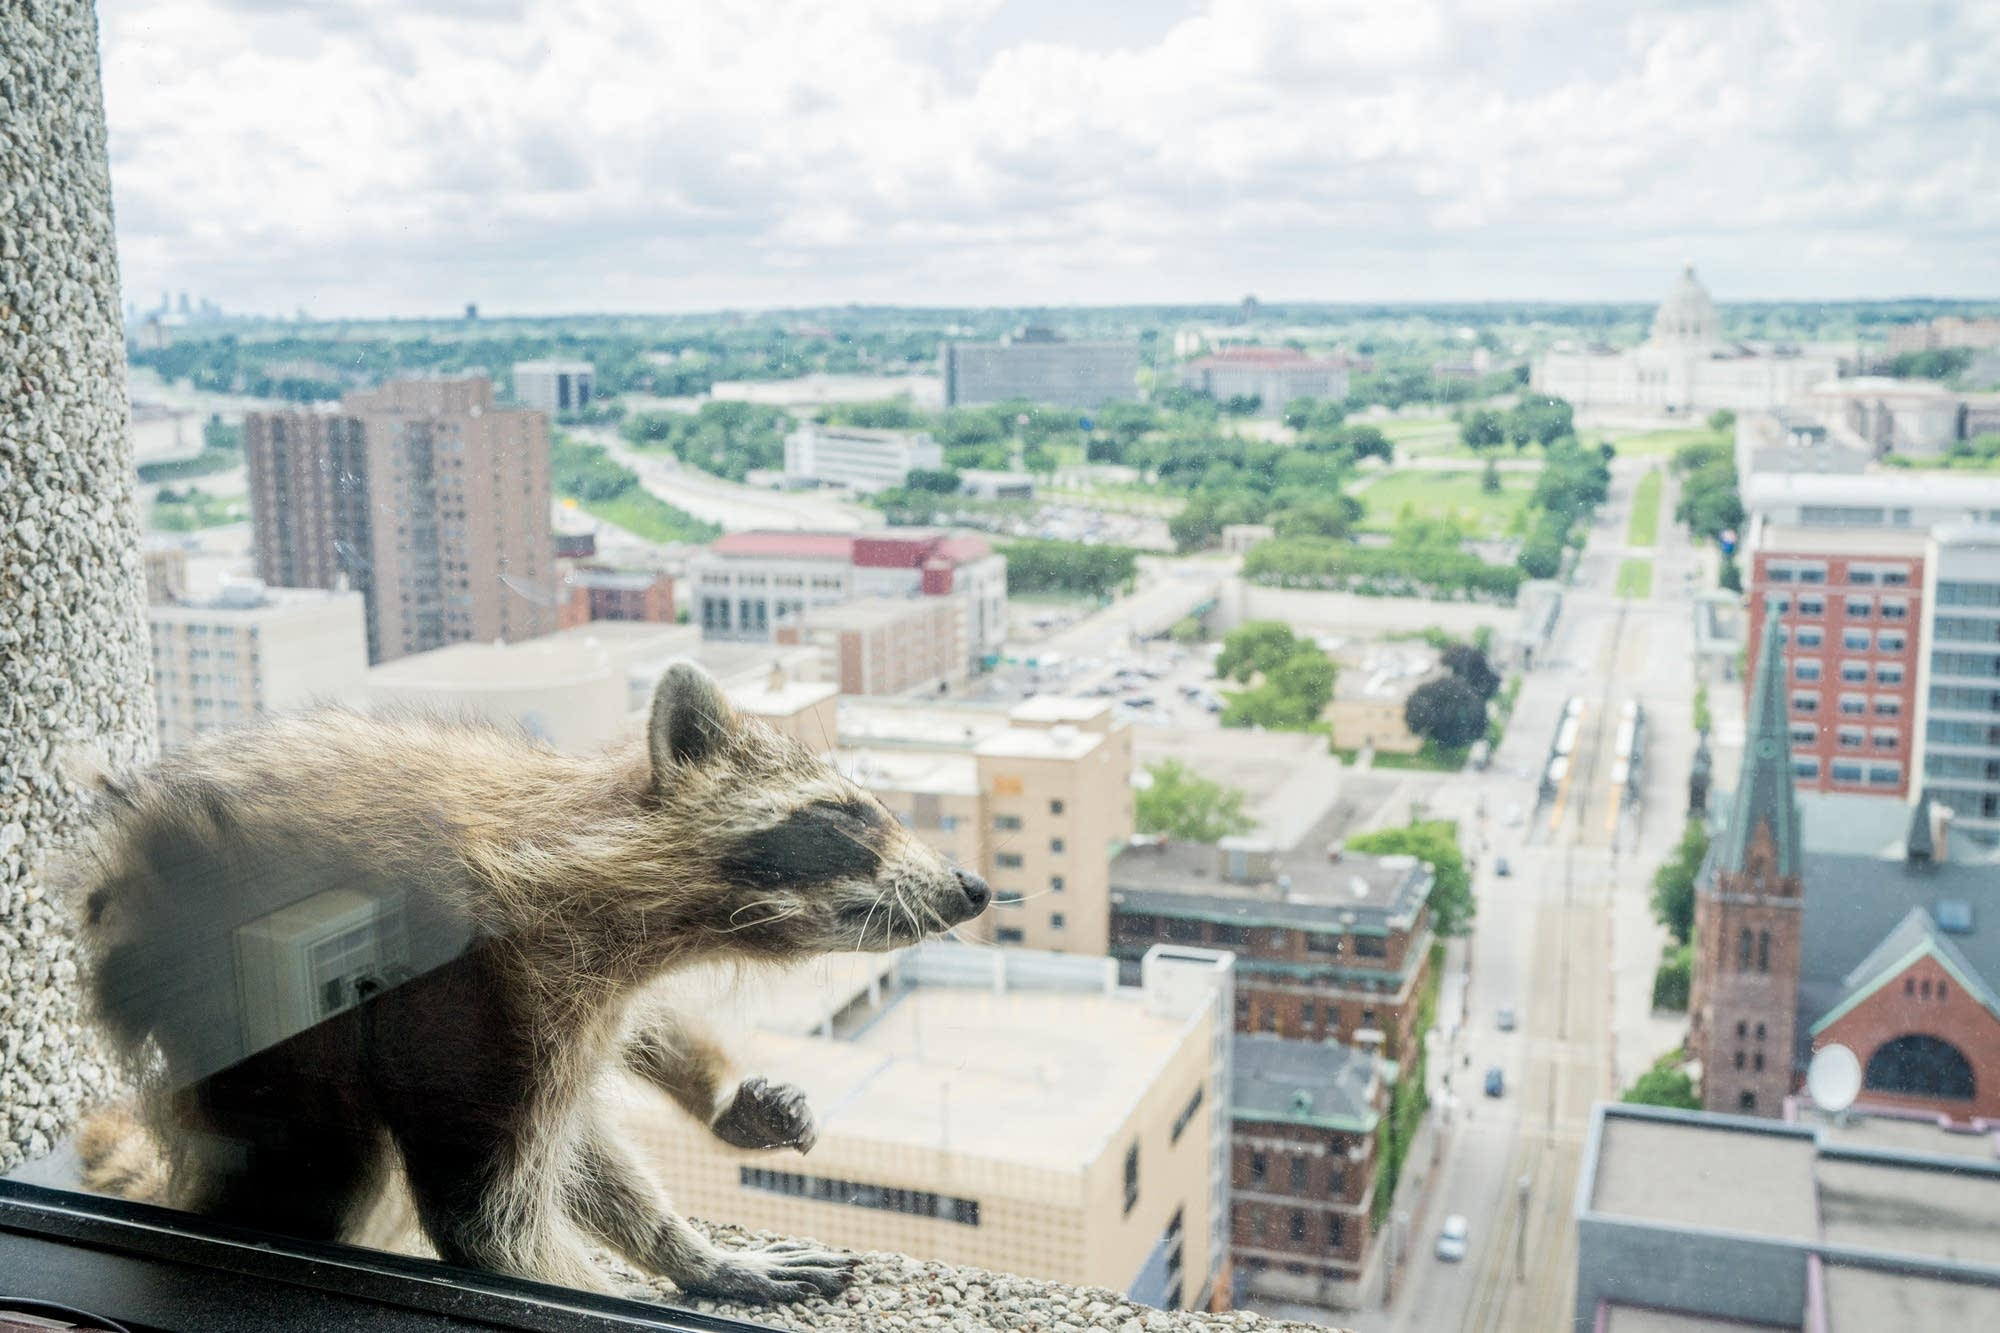 A raccoon scratches itself a window sill.